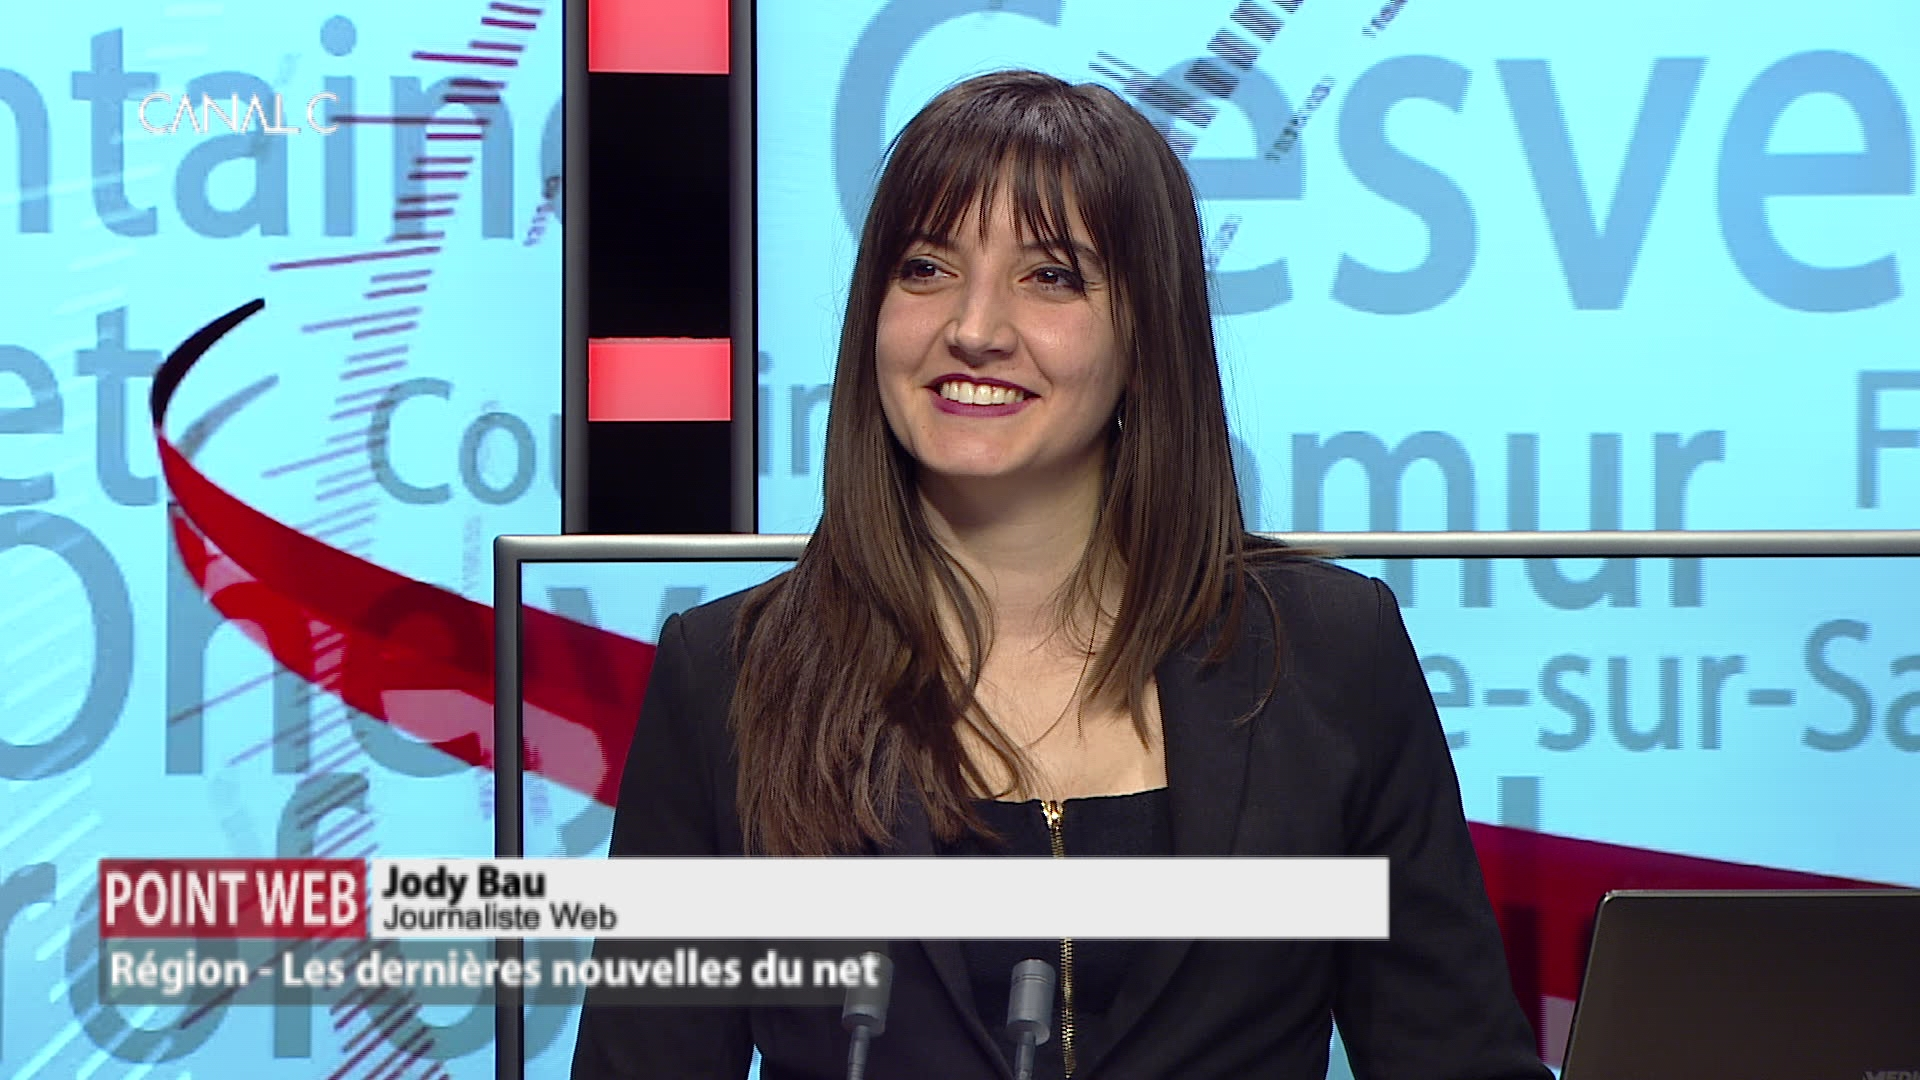 Point Web du 29 janvier 2019